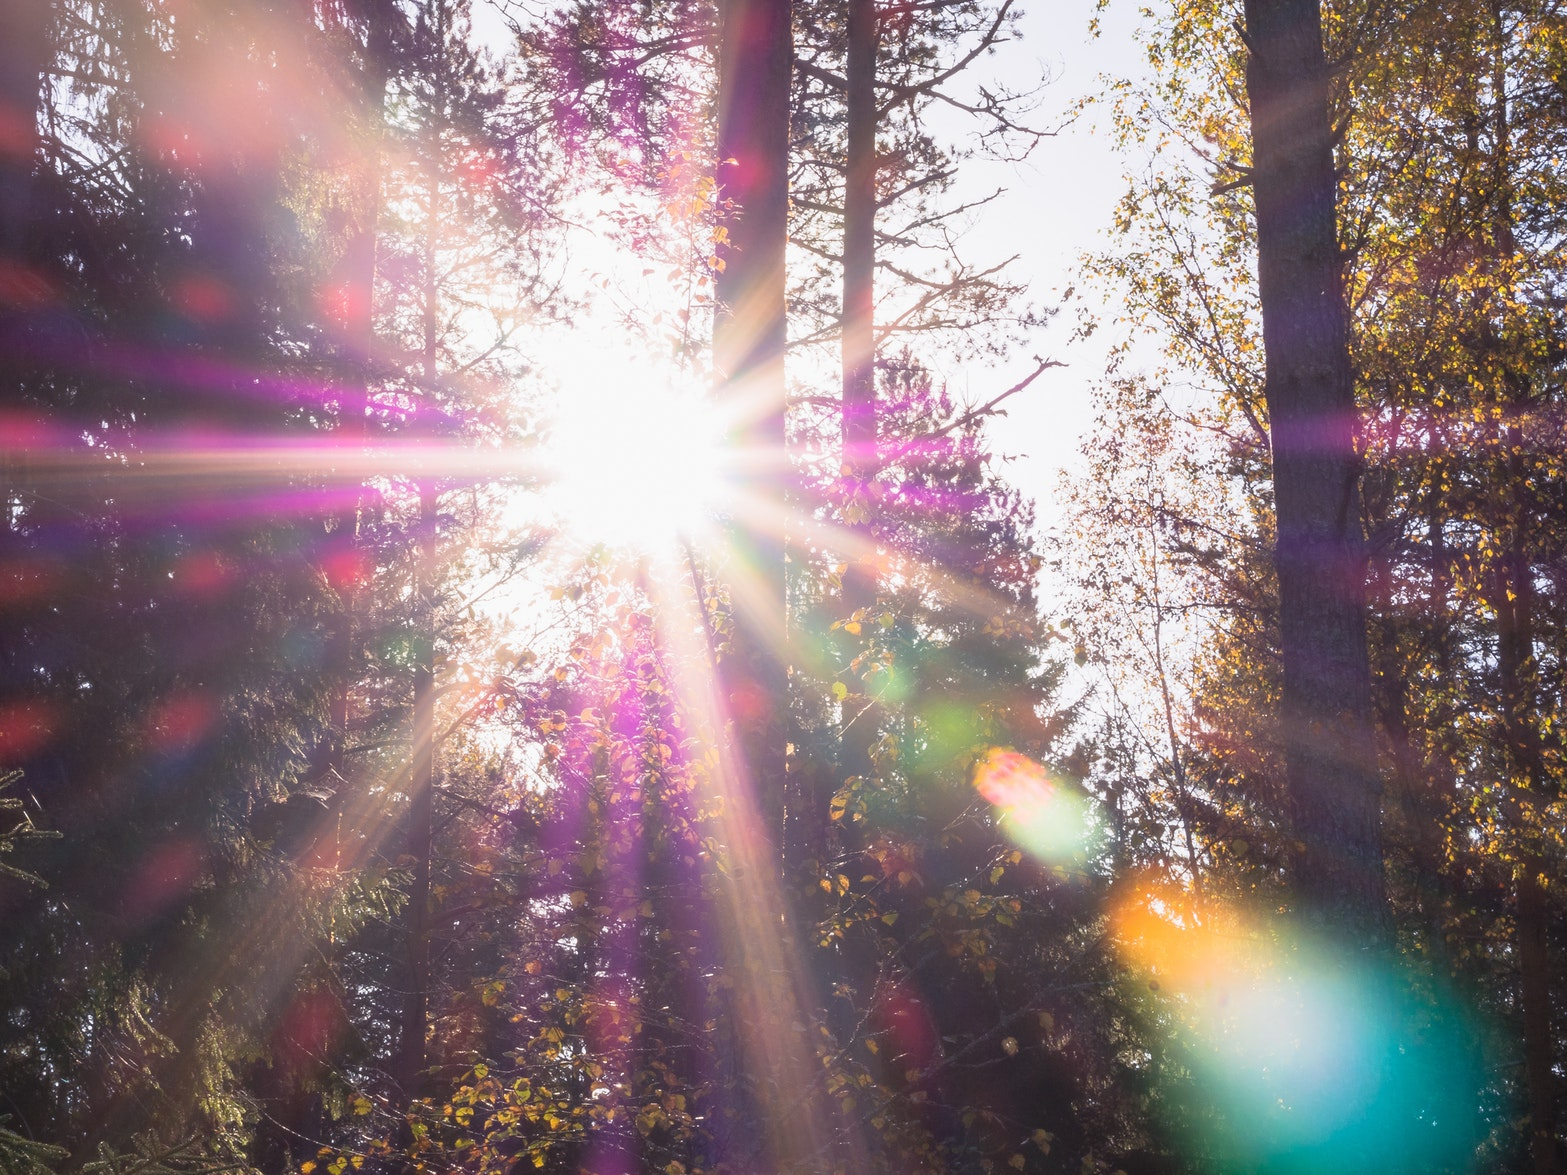 Lens flare in a purple forest.